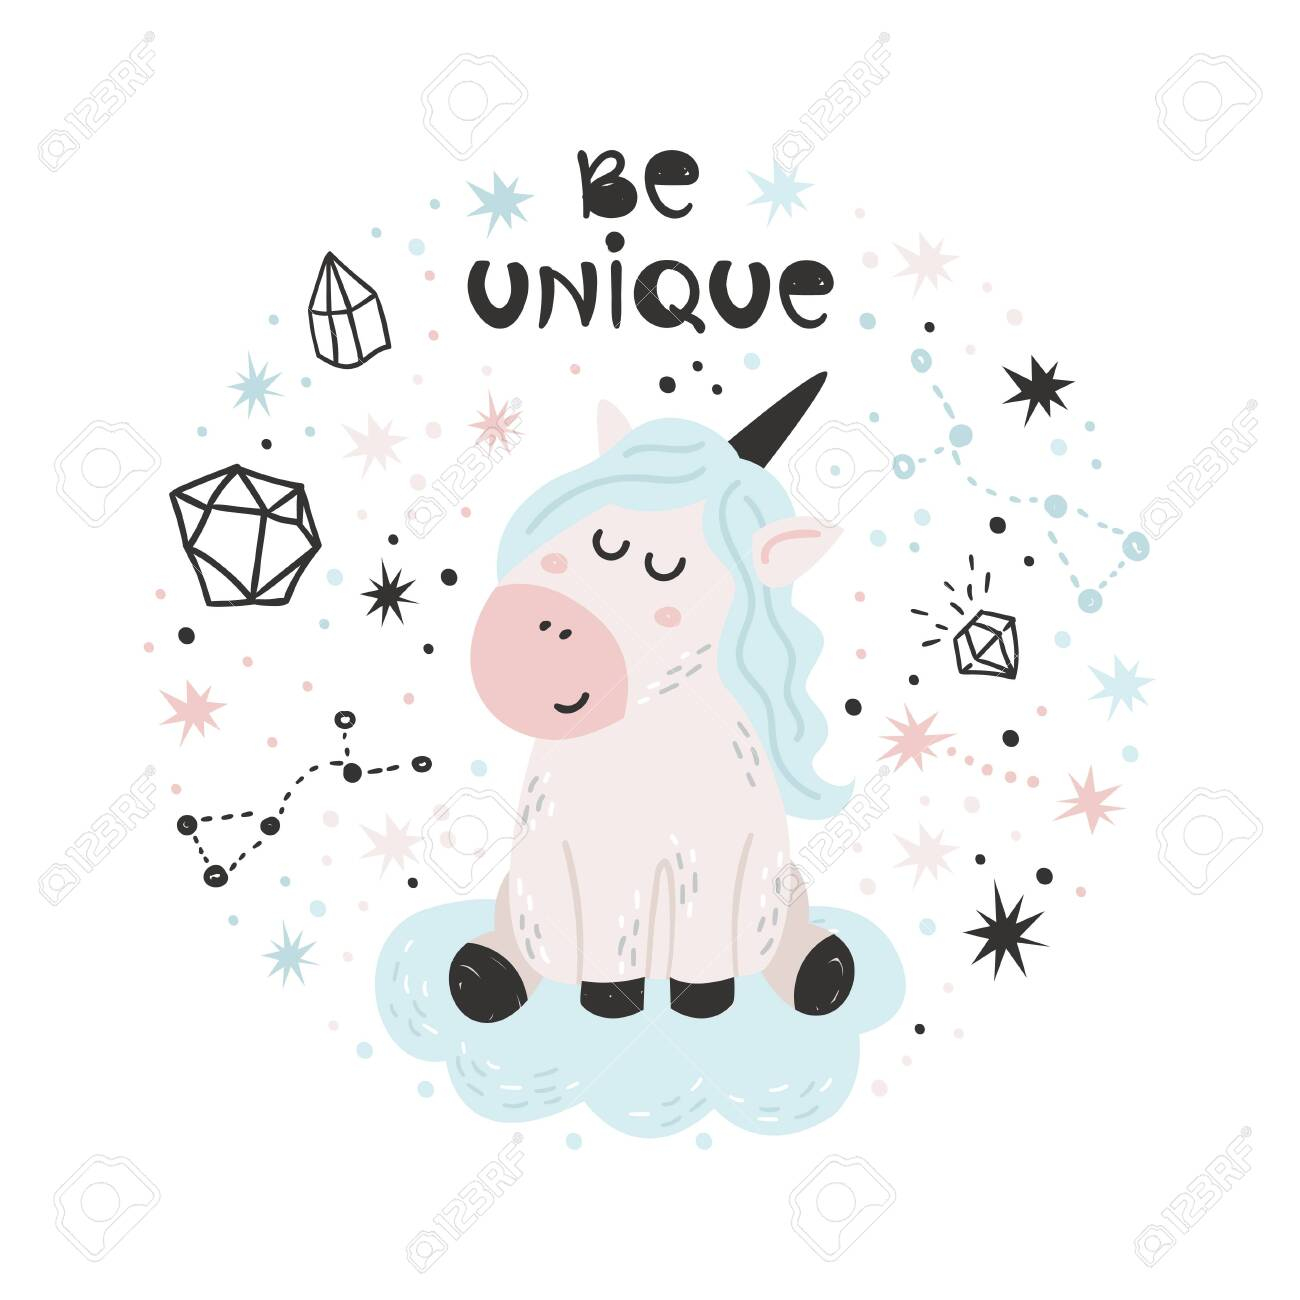 Cute poster with Unicorn. Isolated element for stickers, cards, invites and posters - 143778197